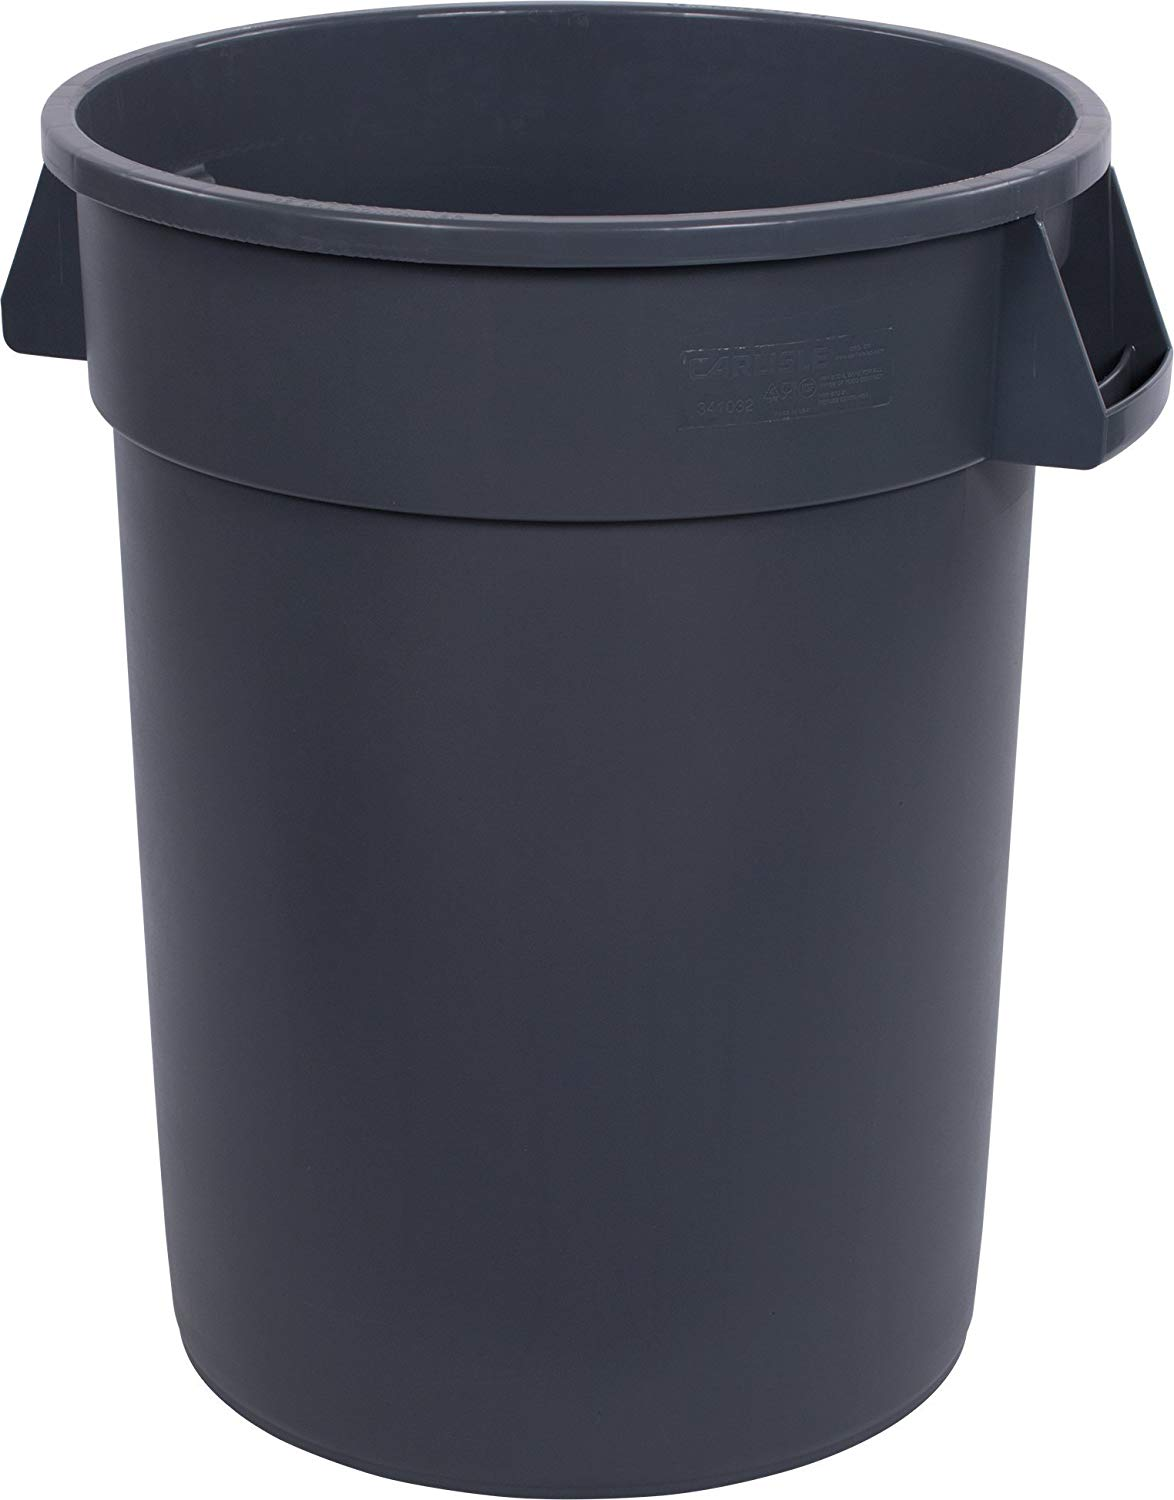 Carlisle Outdoor Trash Can, 32-Gallon